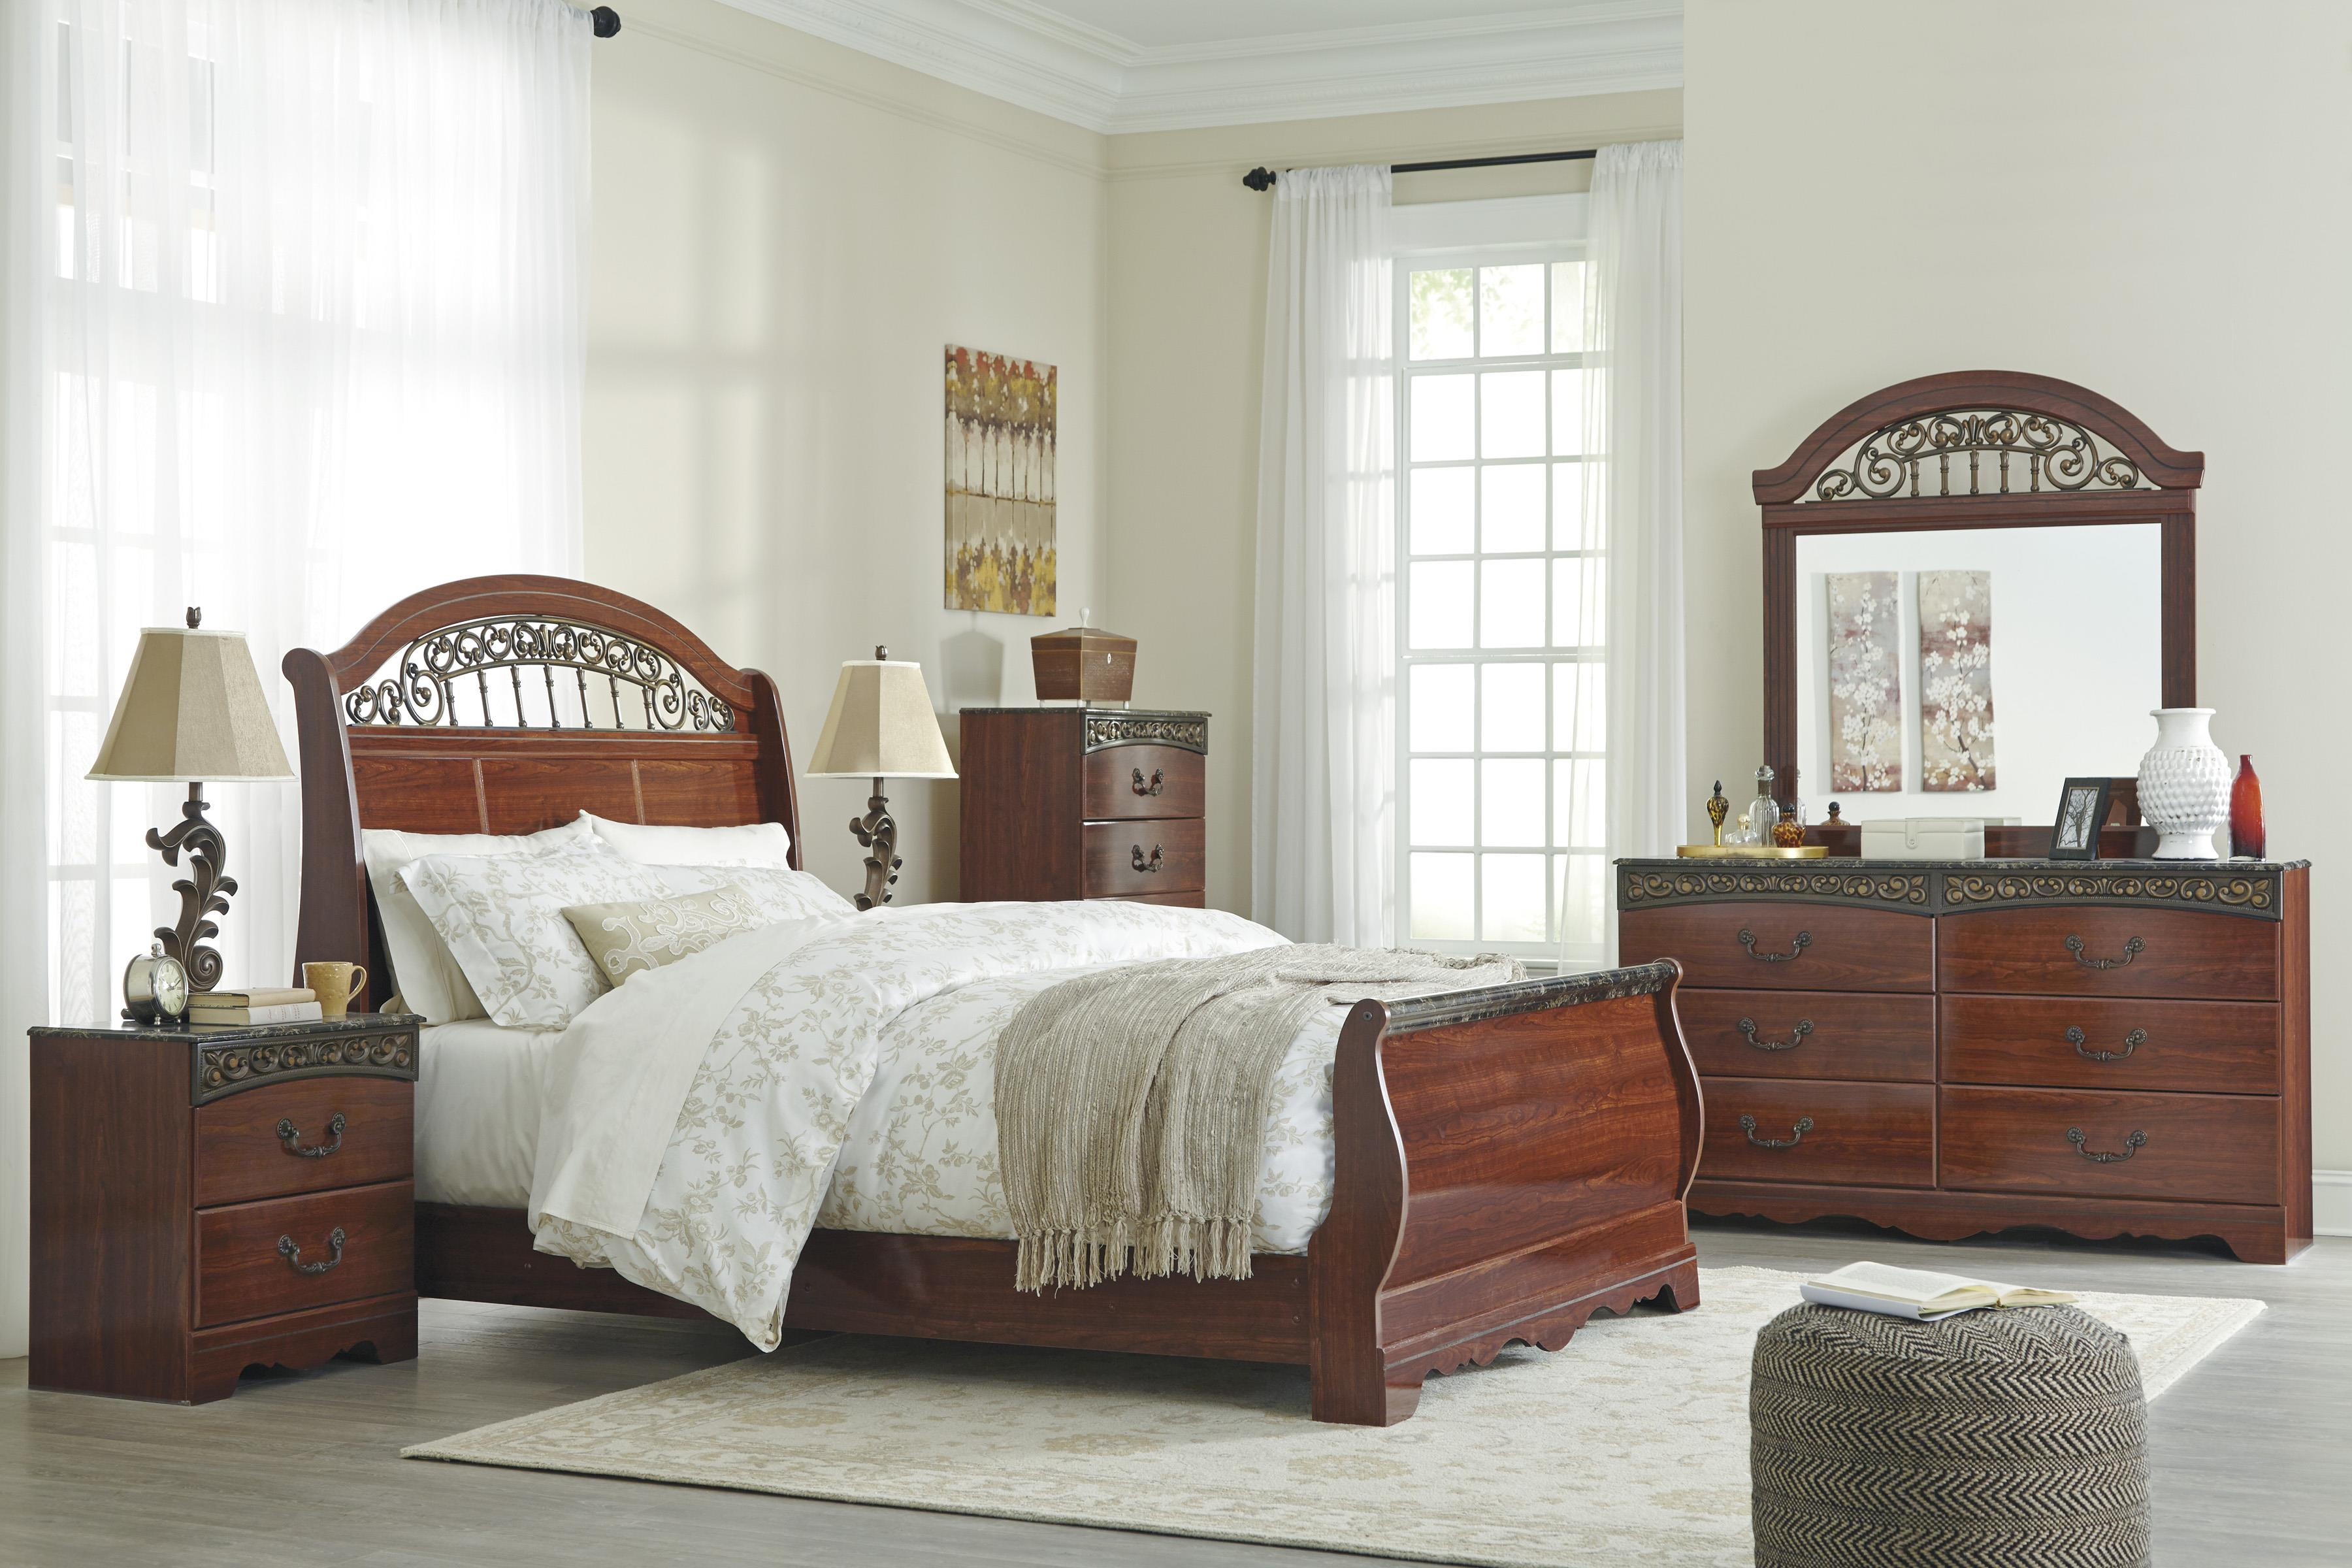 Signature Design by Ashley Fairbrooks Estate Queen Bedroom Group - Item Number: B105 Q Bedroom Group 6